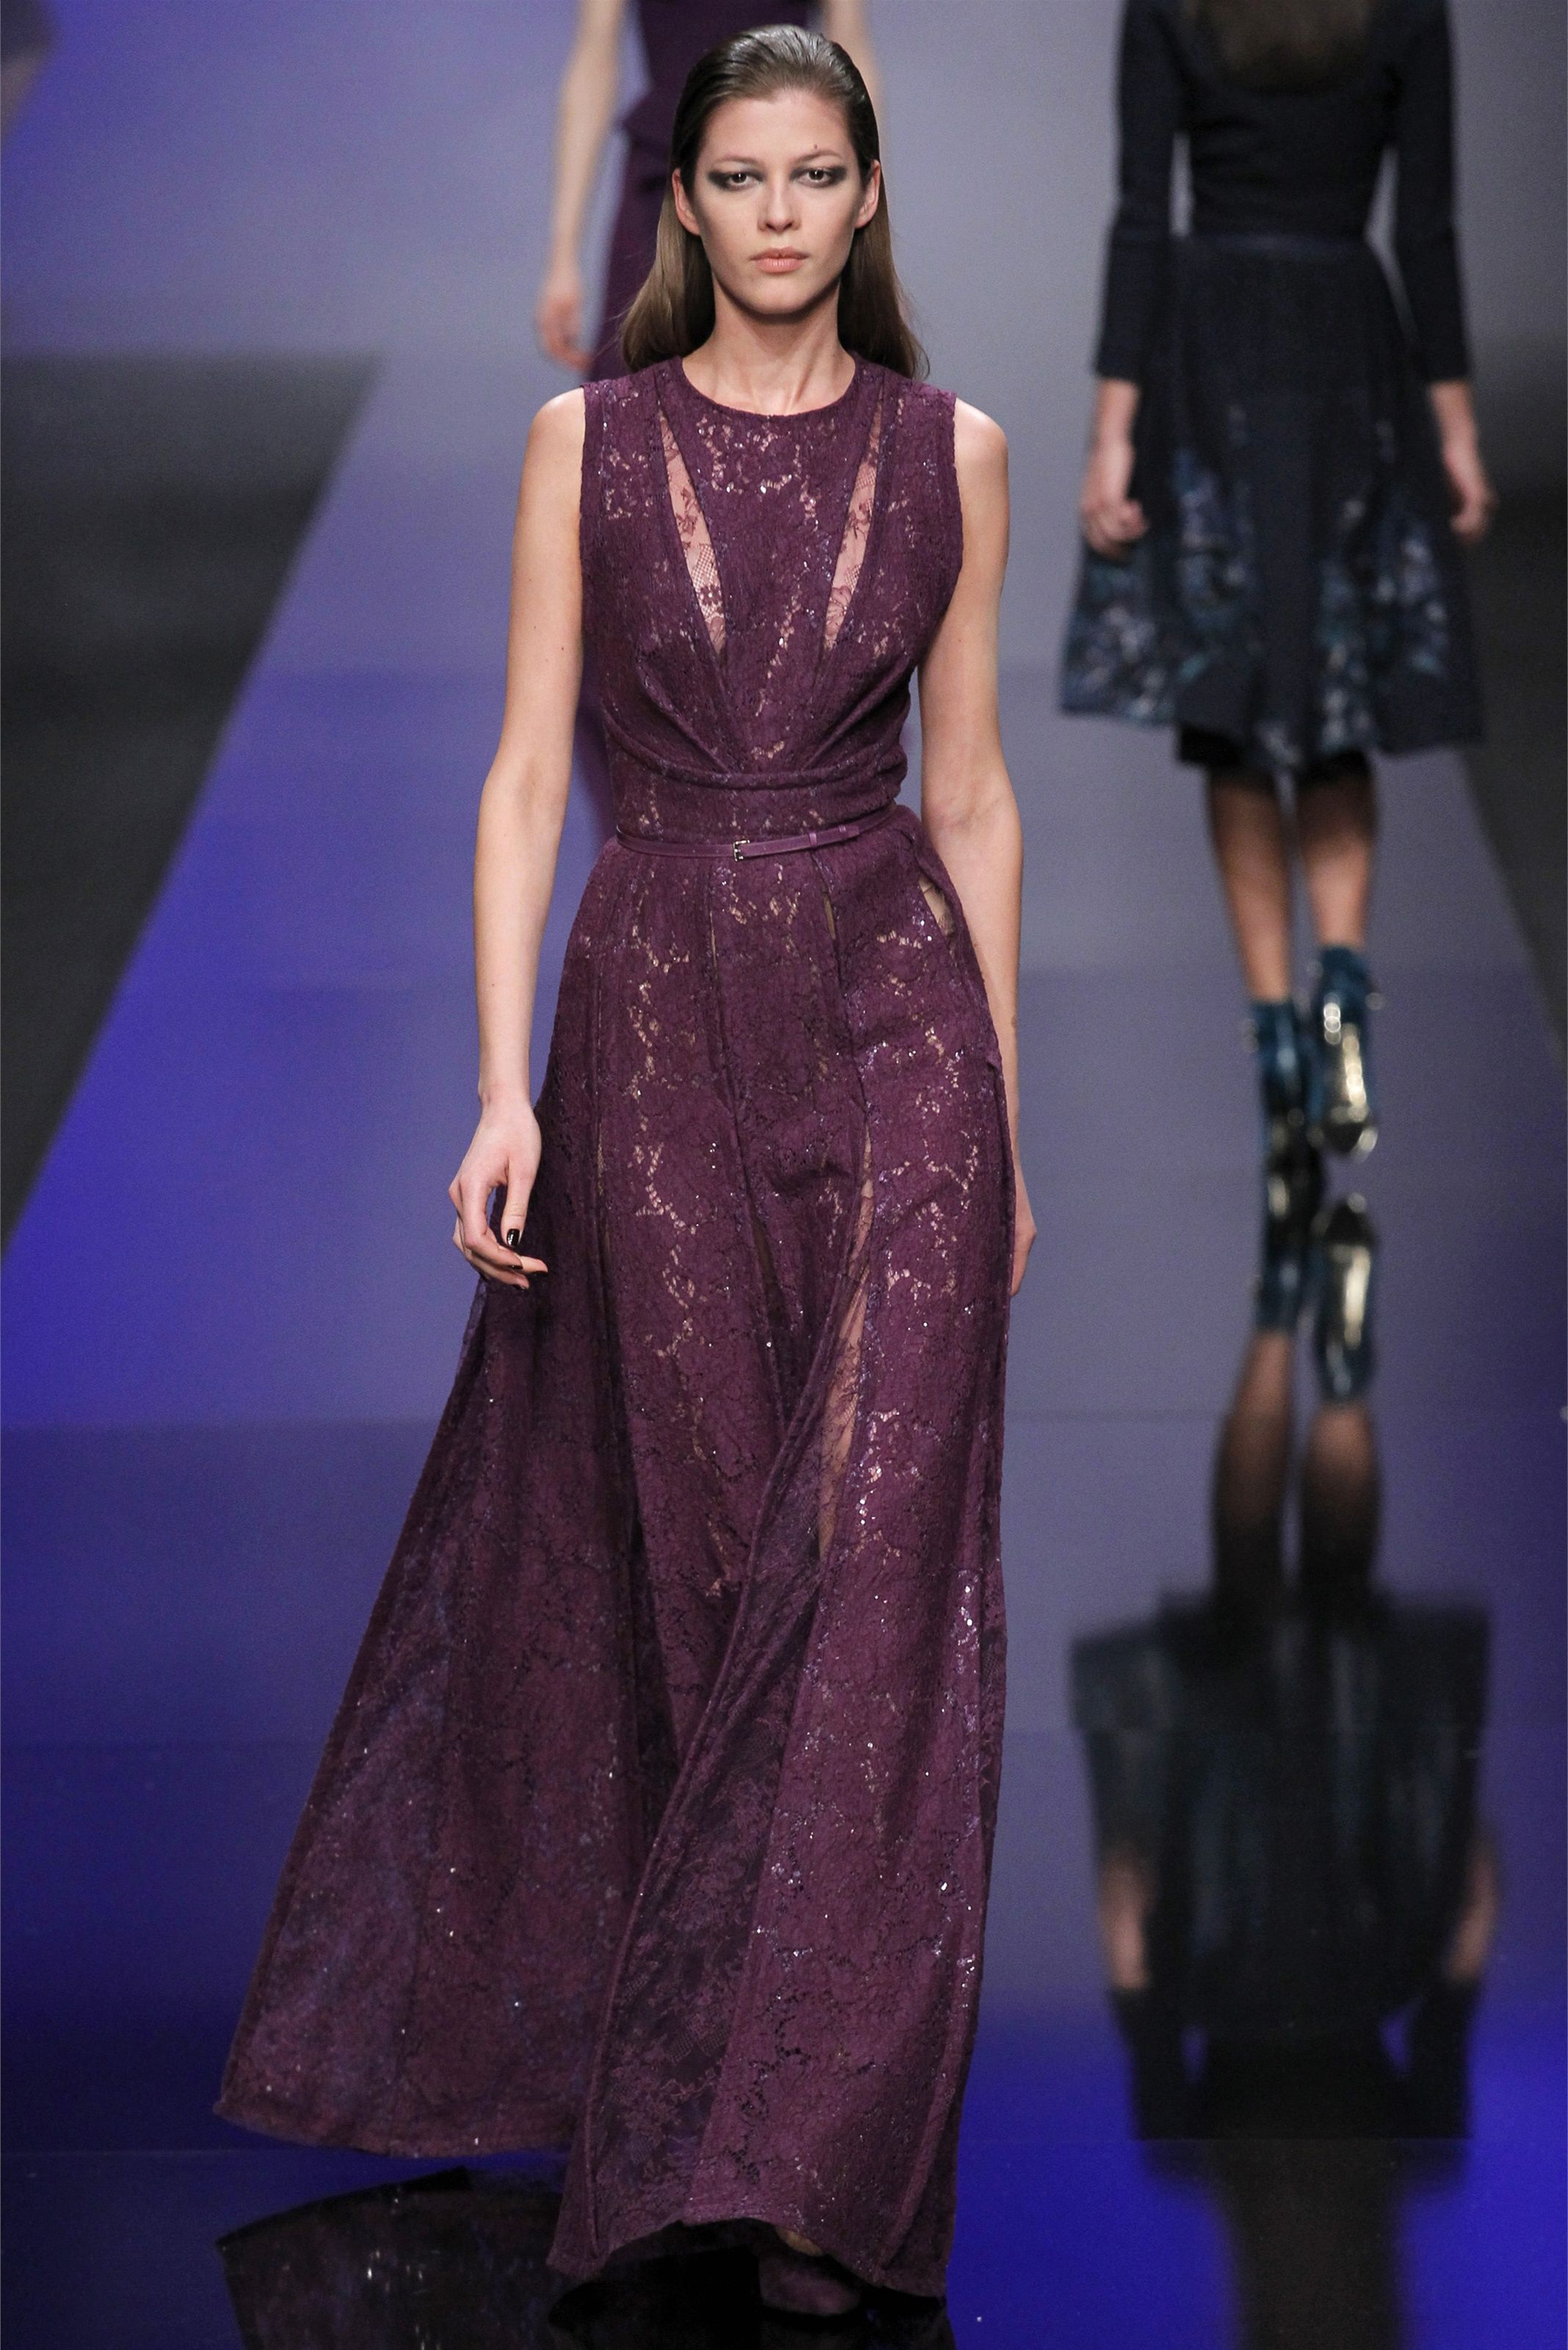 Elie saab collections fall winter the party princess